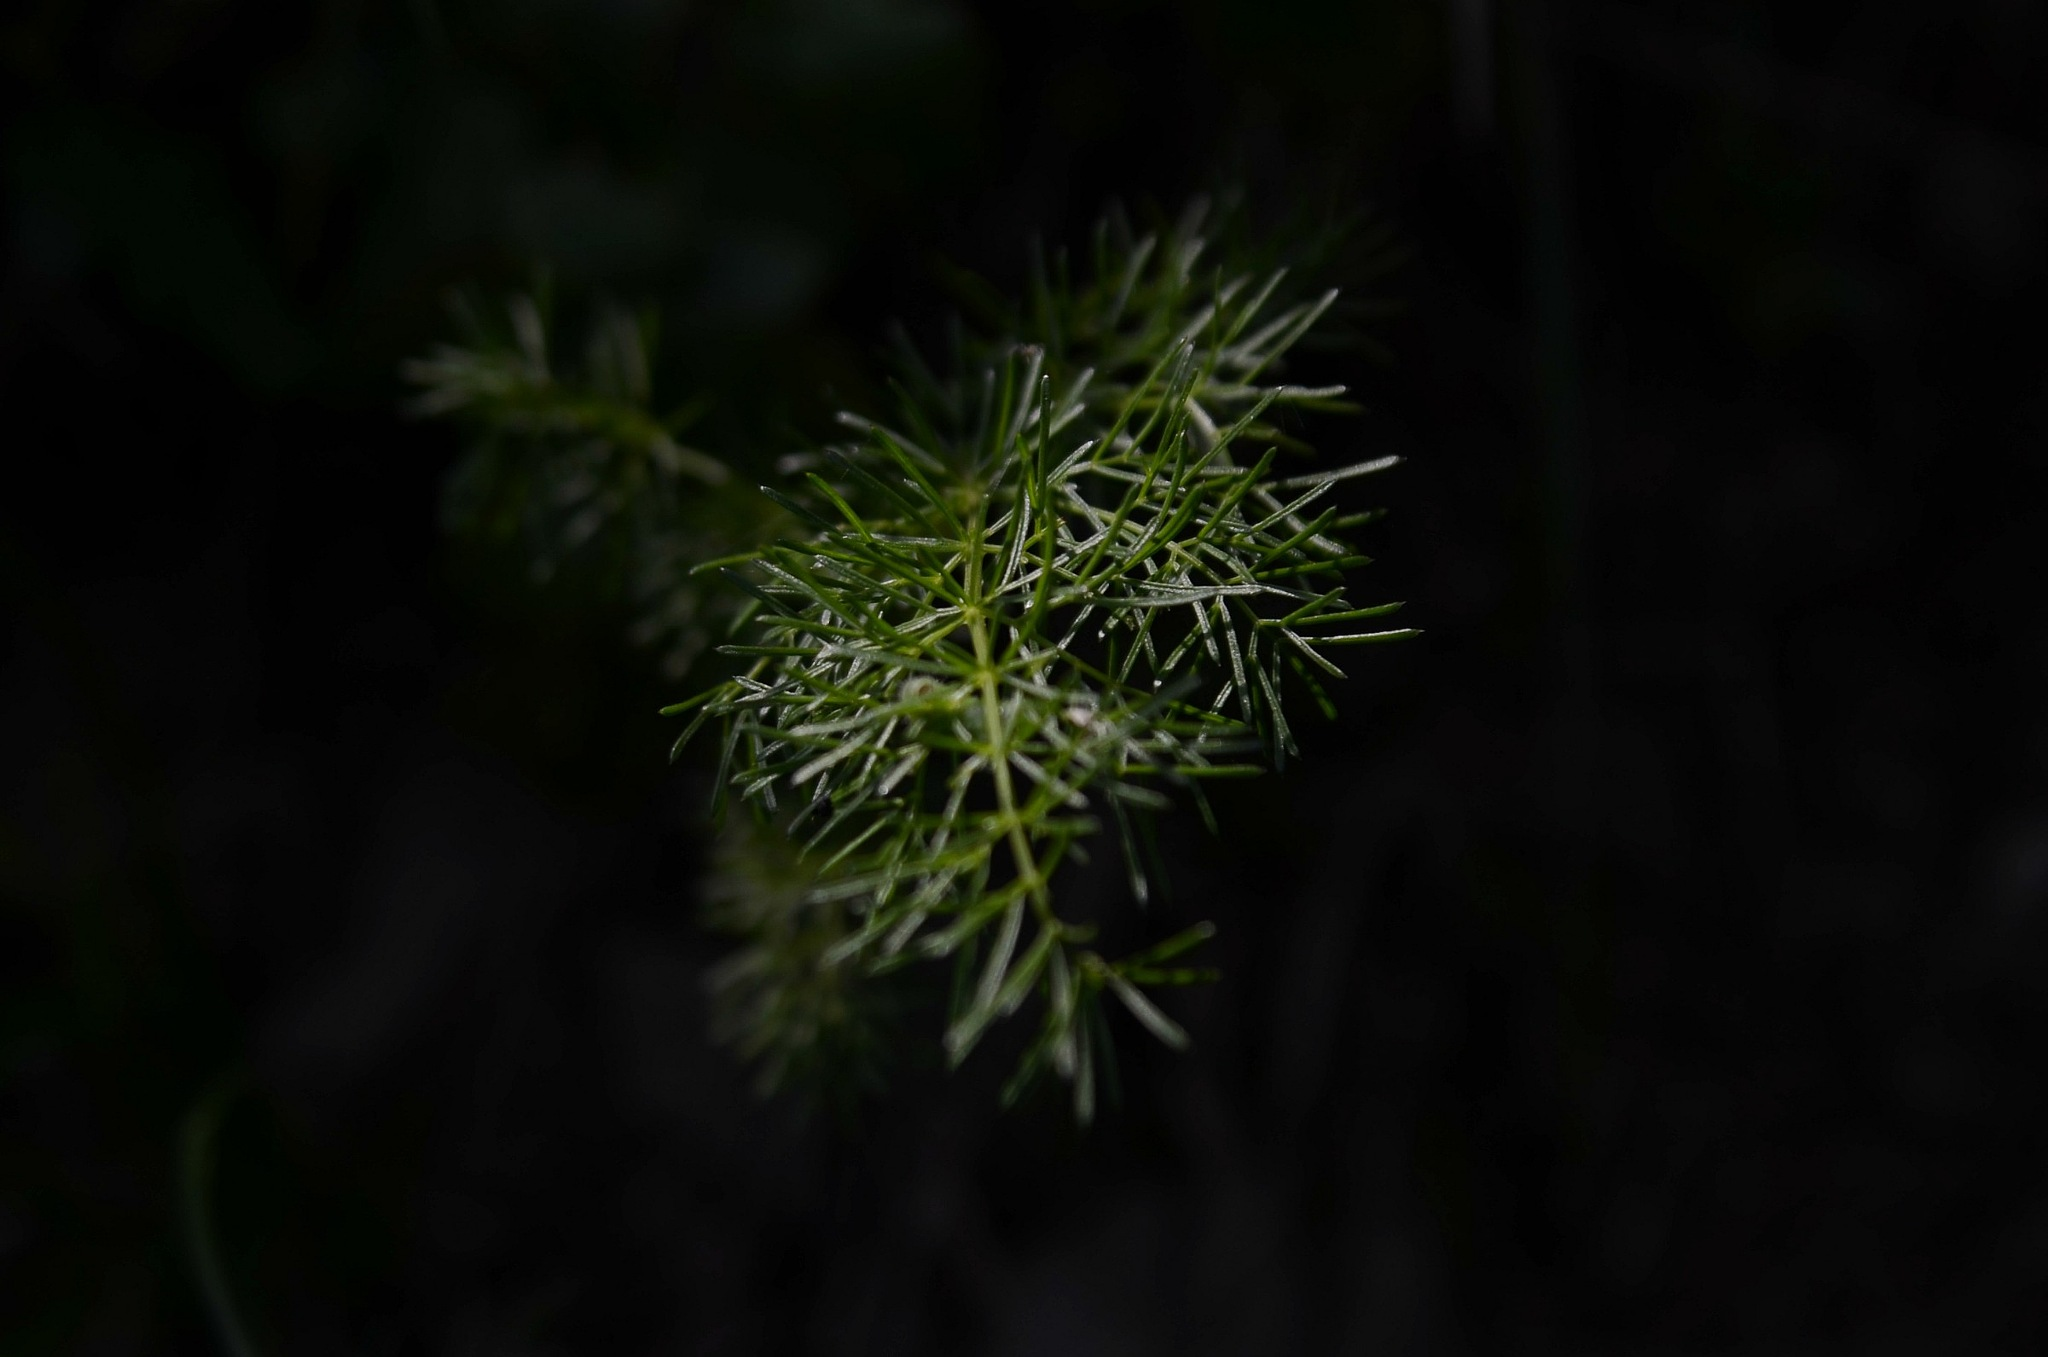 green in the shadow by marina.barbagelata